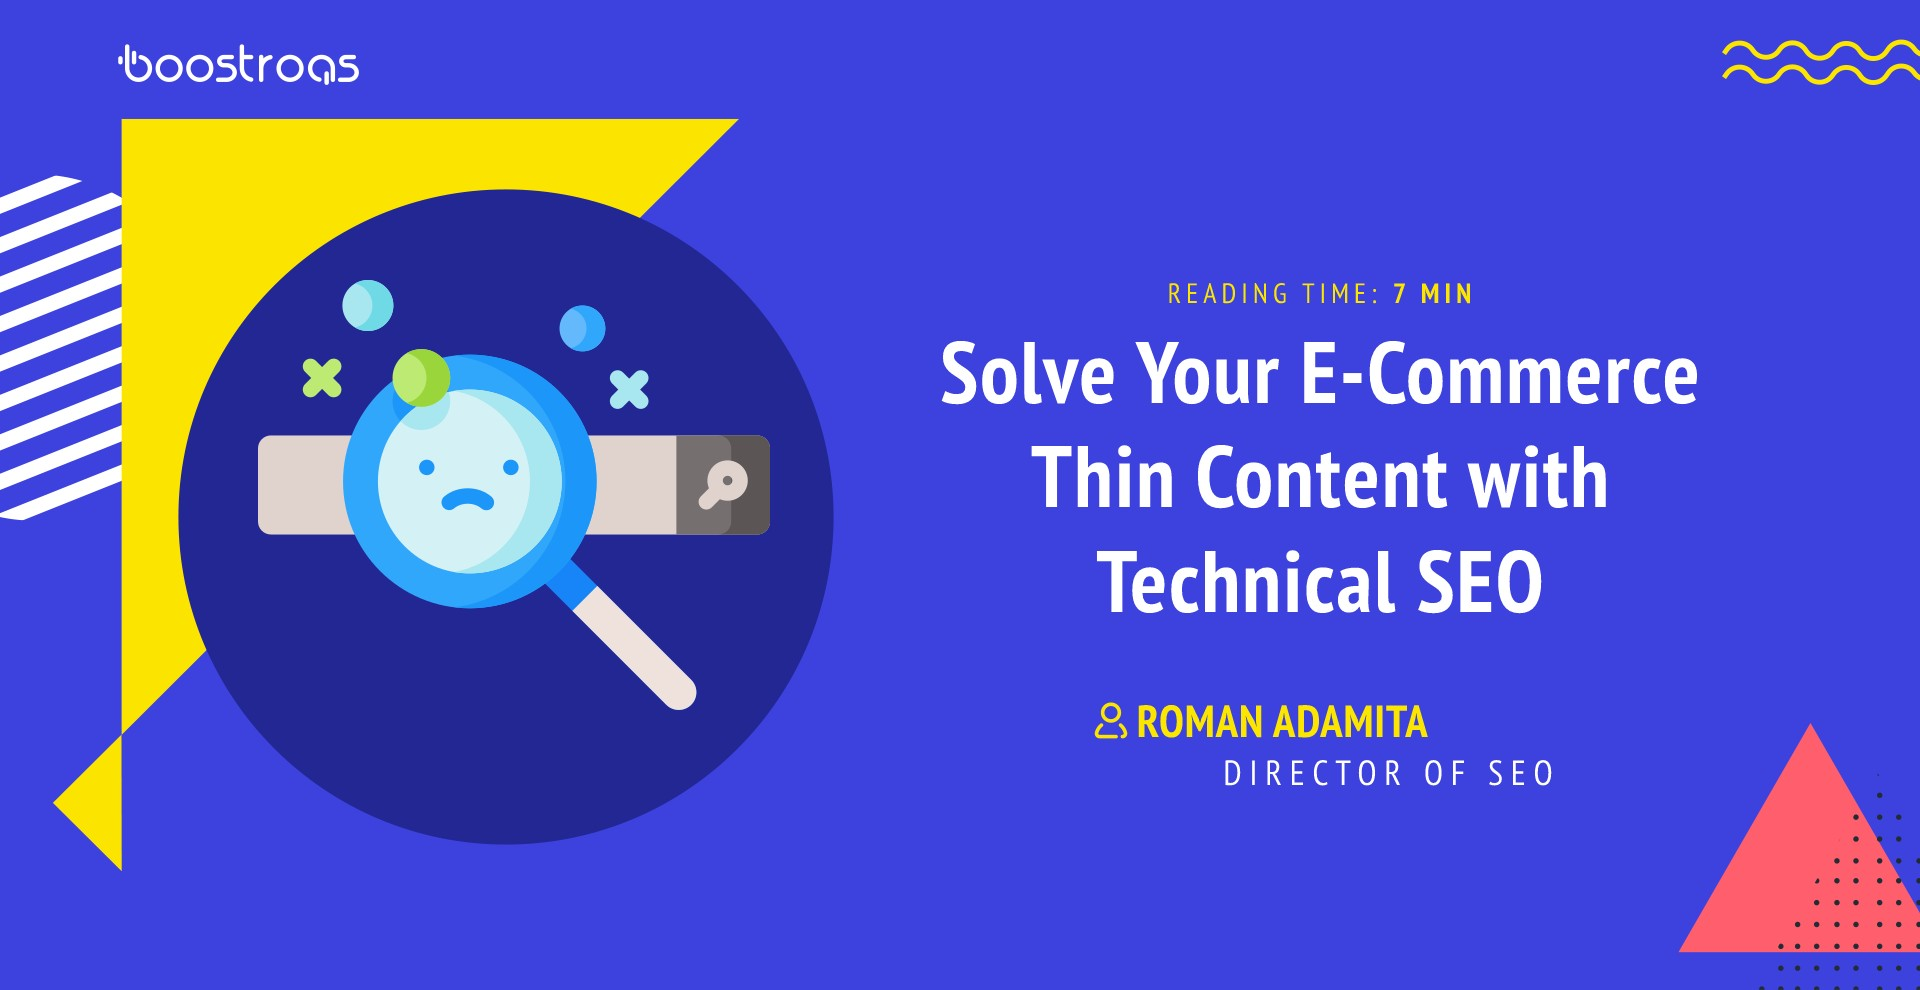 Solve Your E-Commerce Thin Content with Technical SEO - BoostRoas